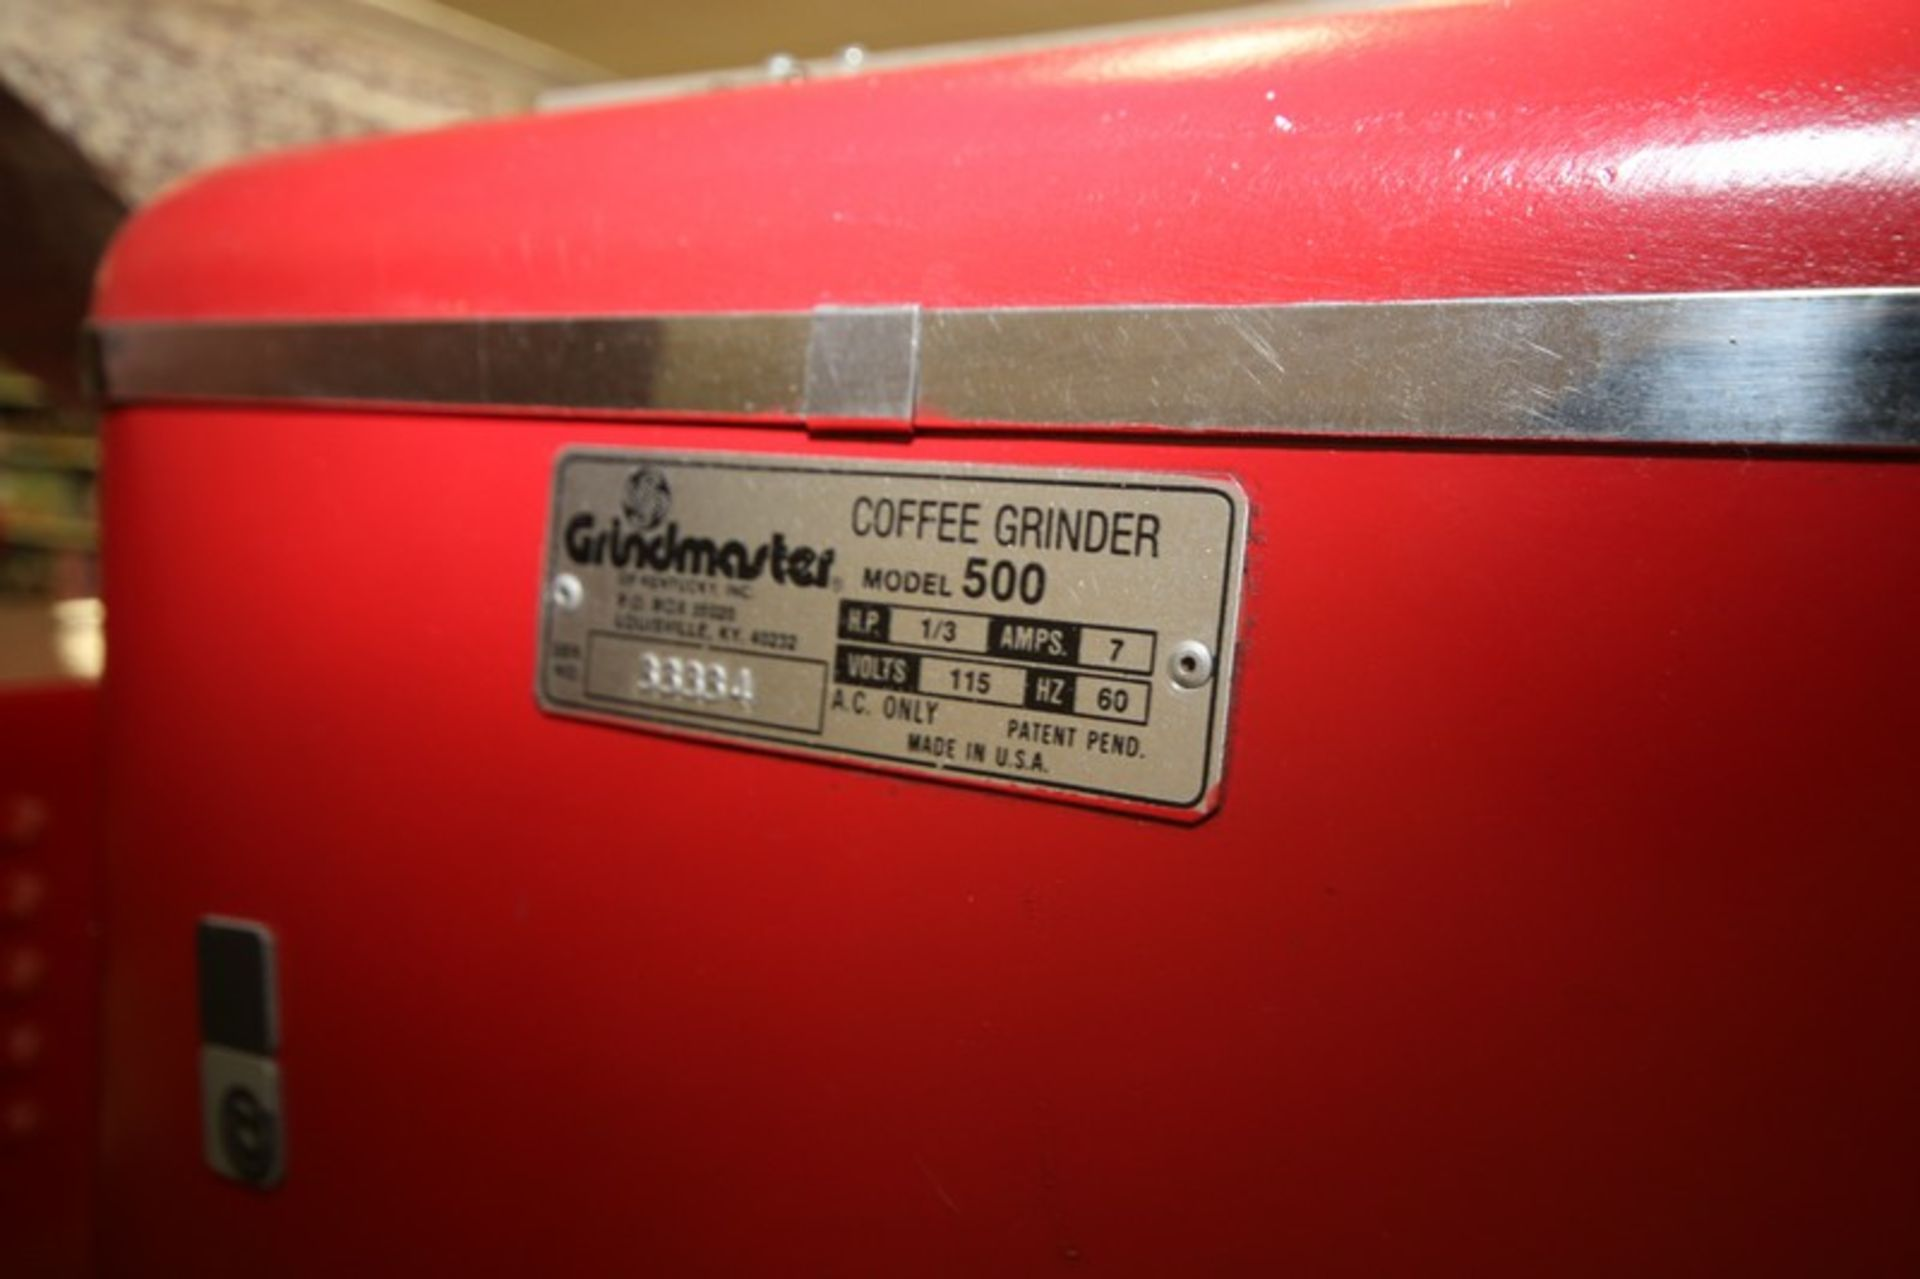 Grindmaster Coffee Grinder, M/N 500, S/N 33334, 115 Volts, with 1/3 hp Motor (Located in McMurray, - Image 4 of 4